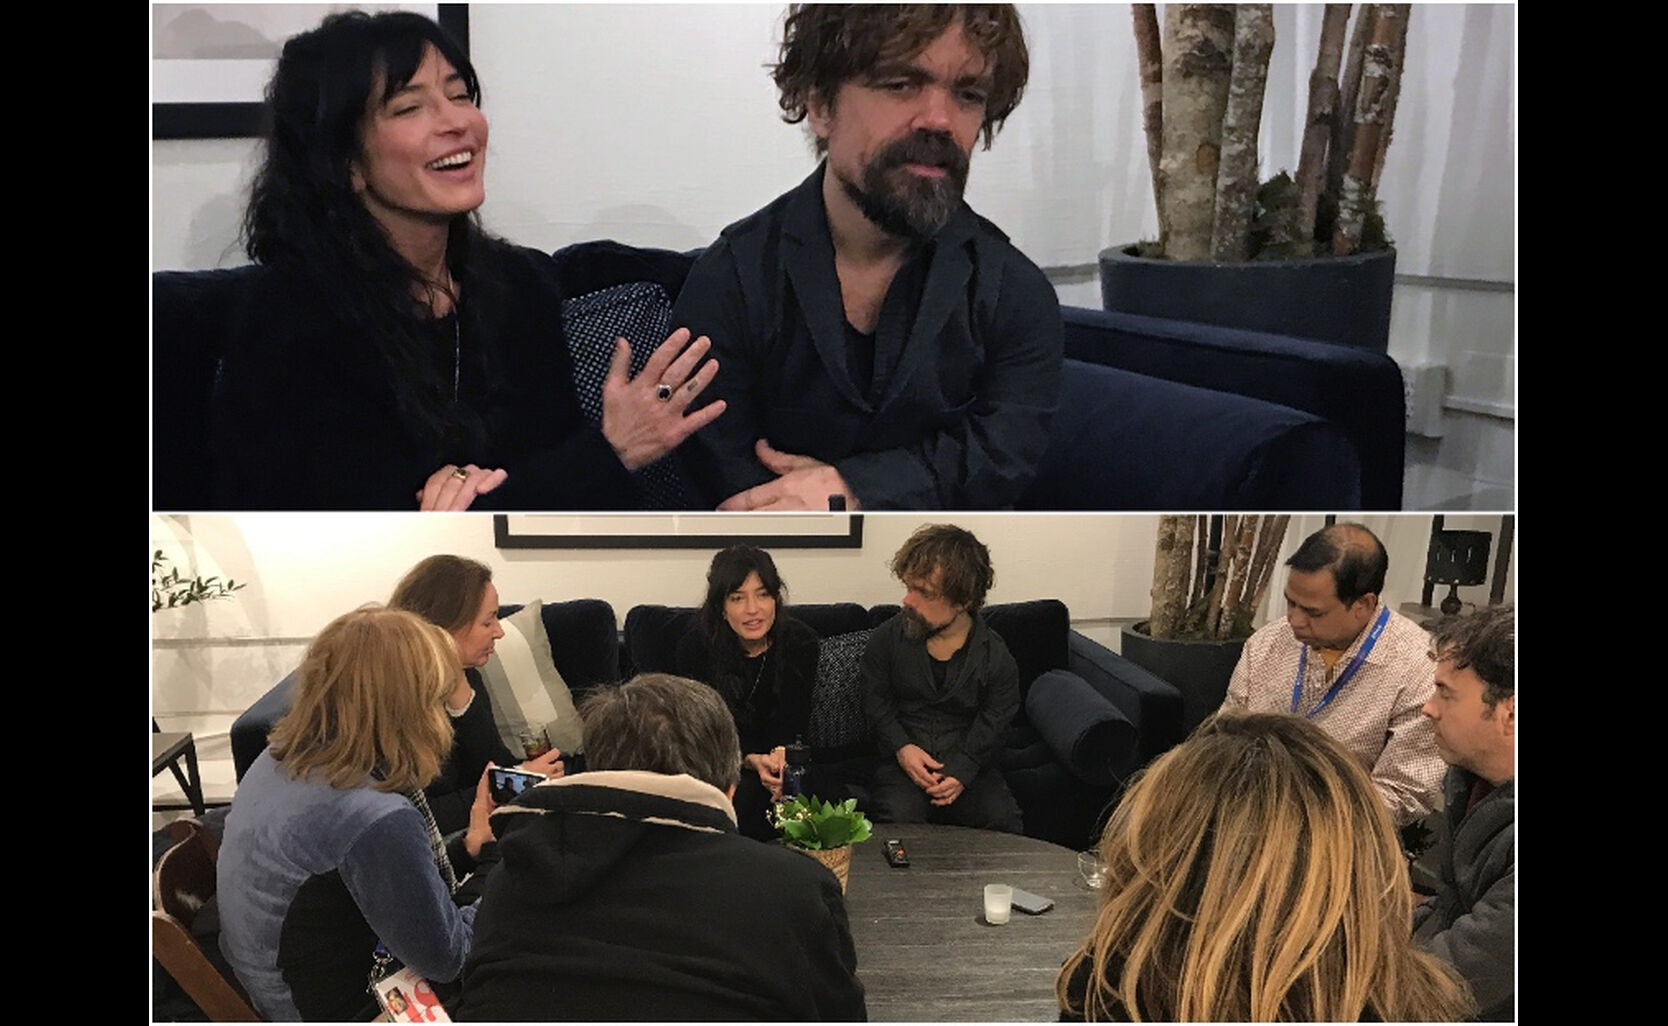 Reed Morano and Peter Dinklage in Sundance 2018